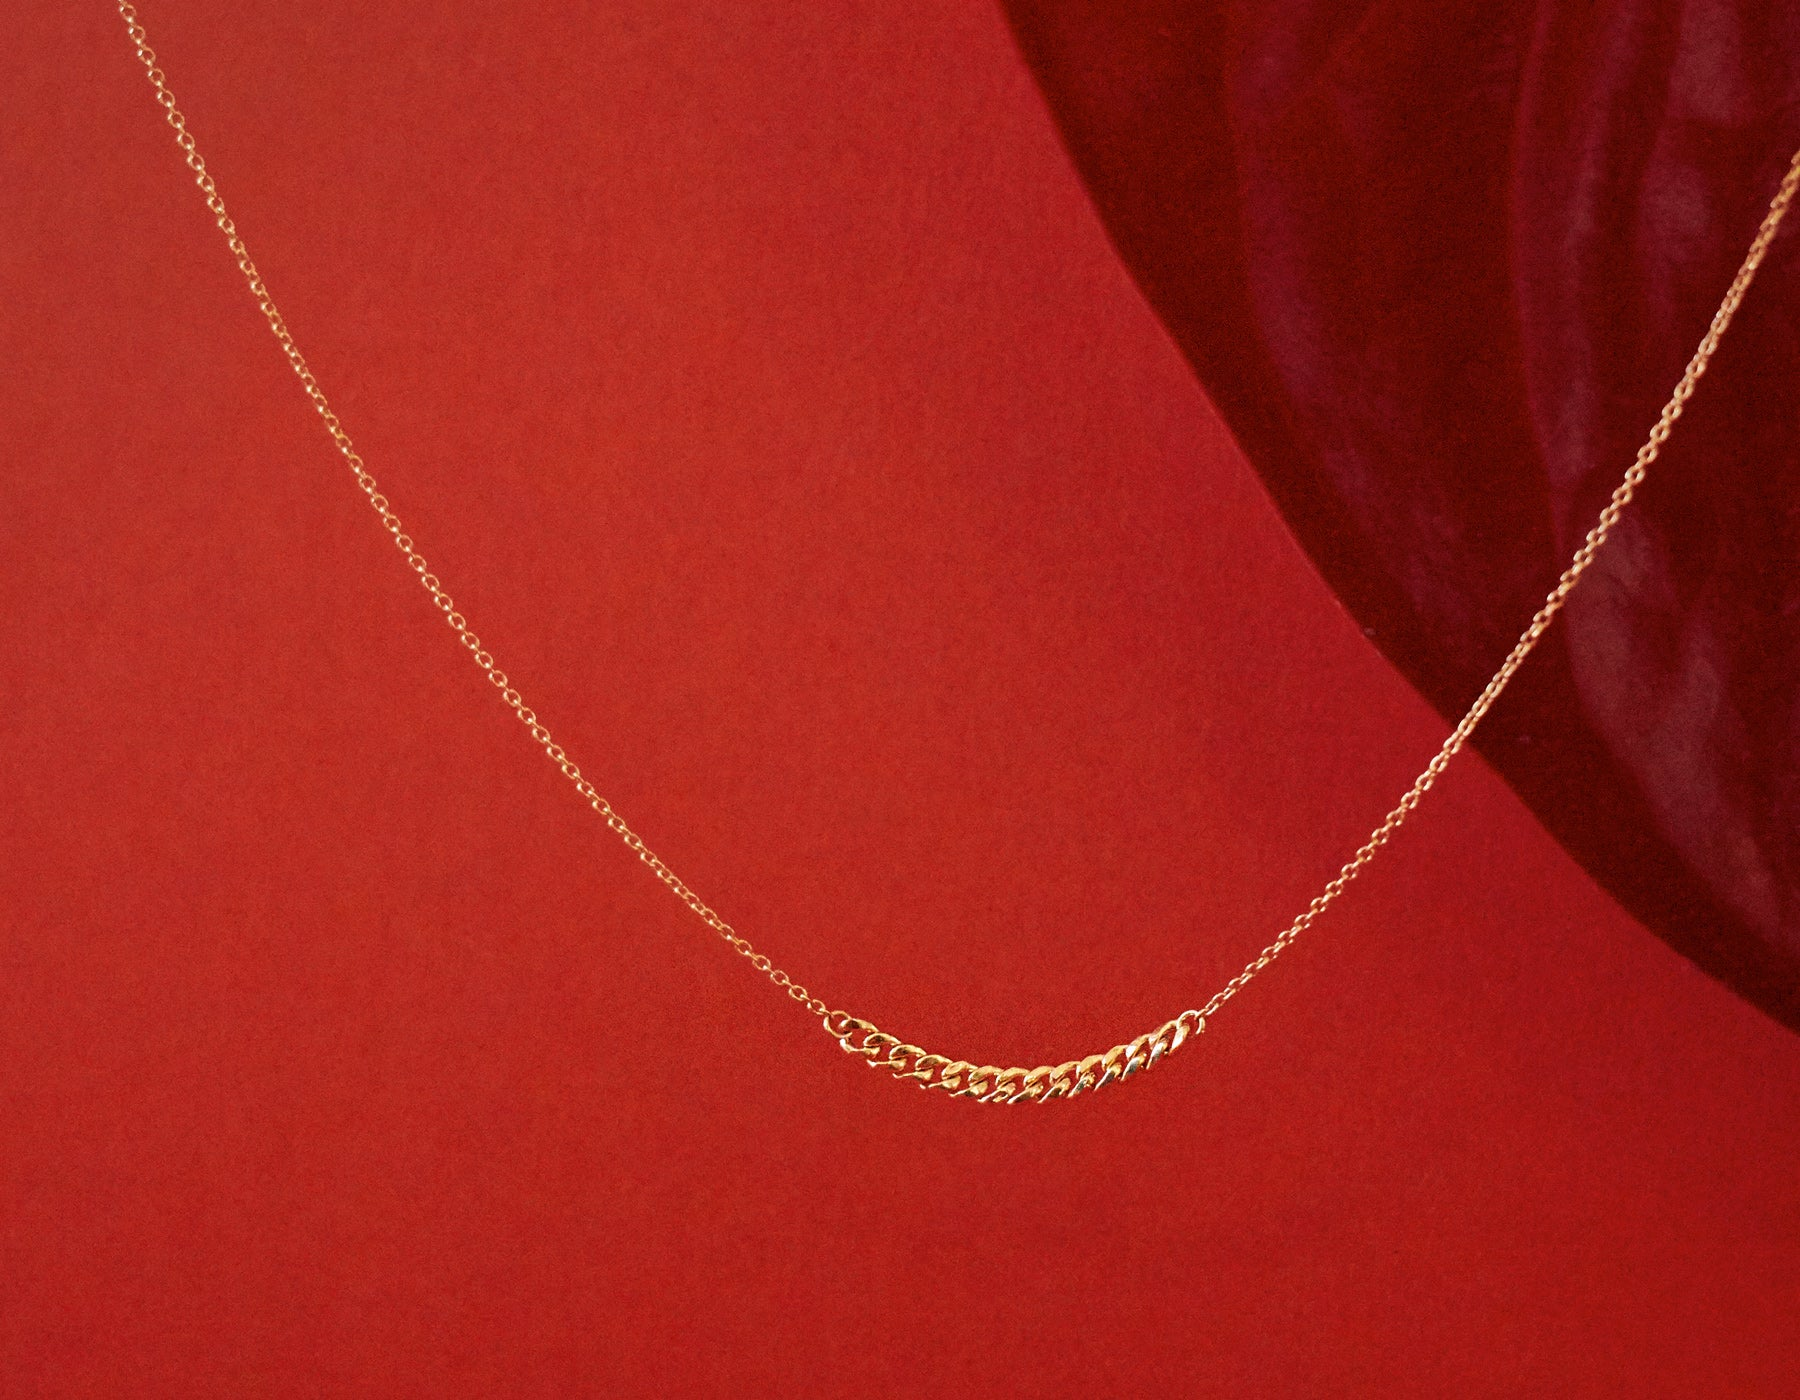 Simple classic chain 14k solid gold Interlink Necklace red velvet Vrai and Oro